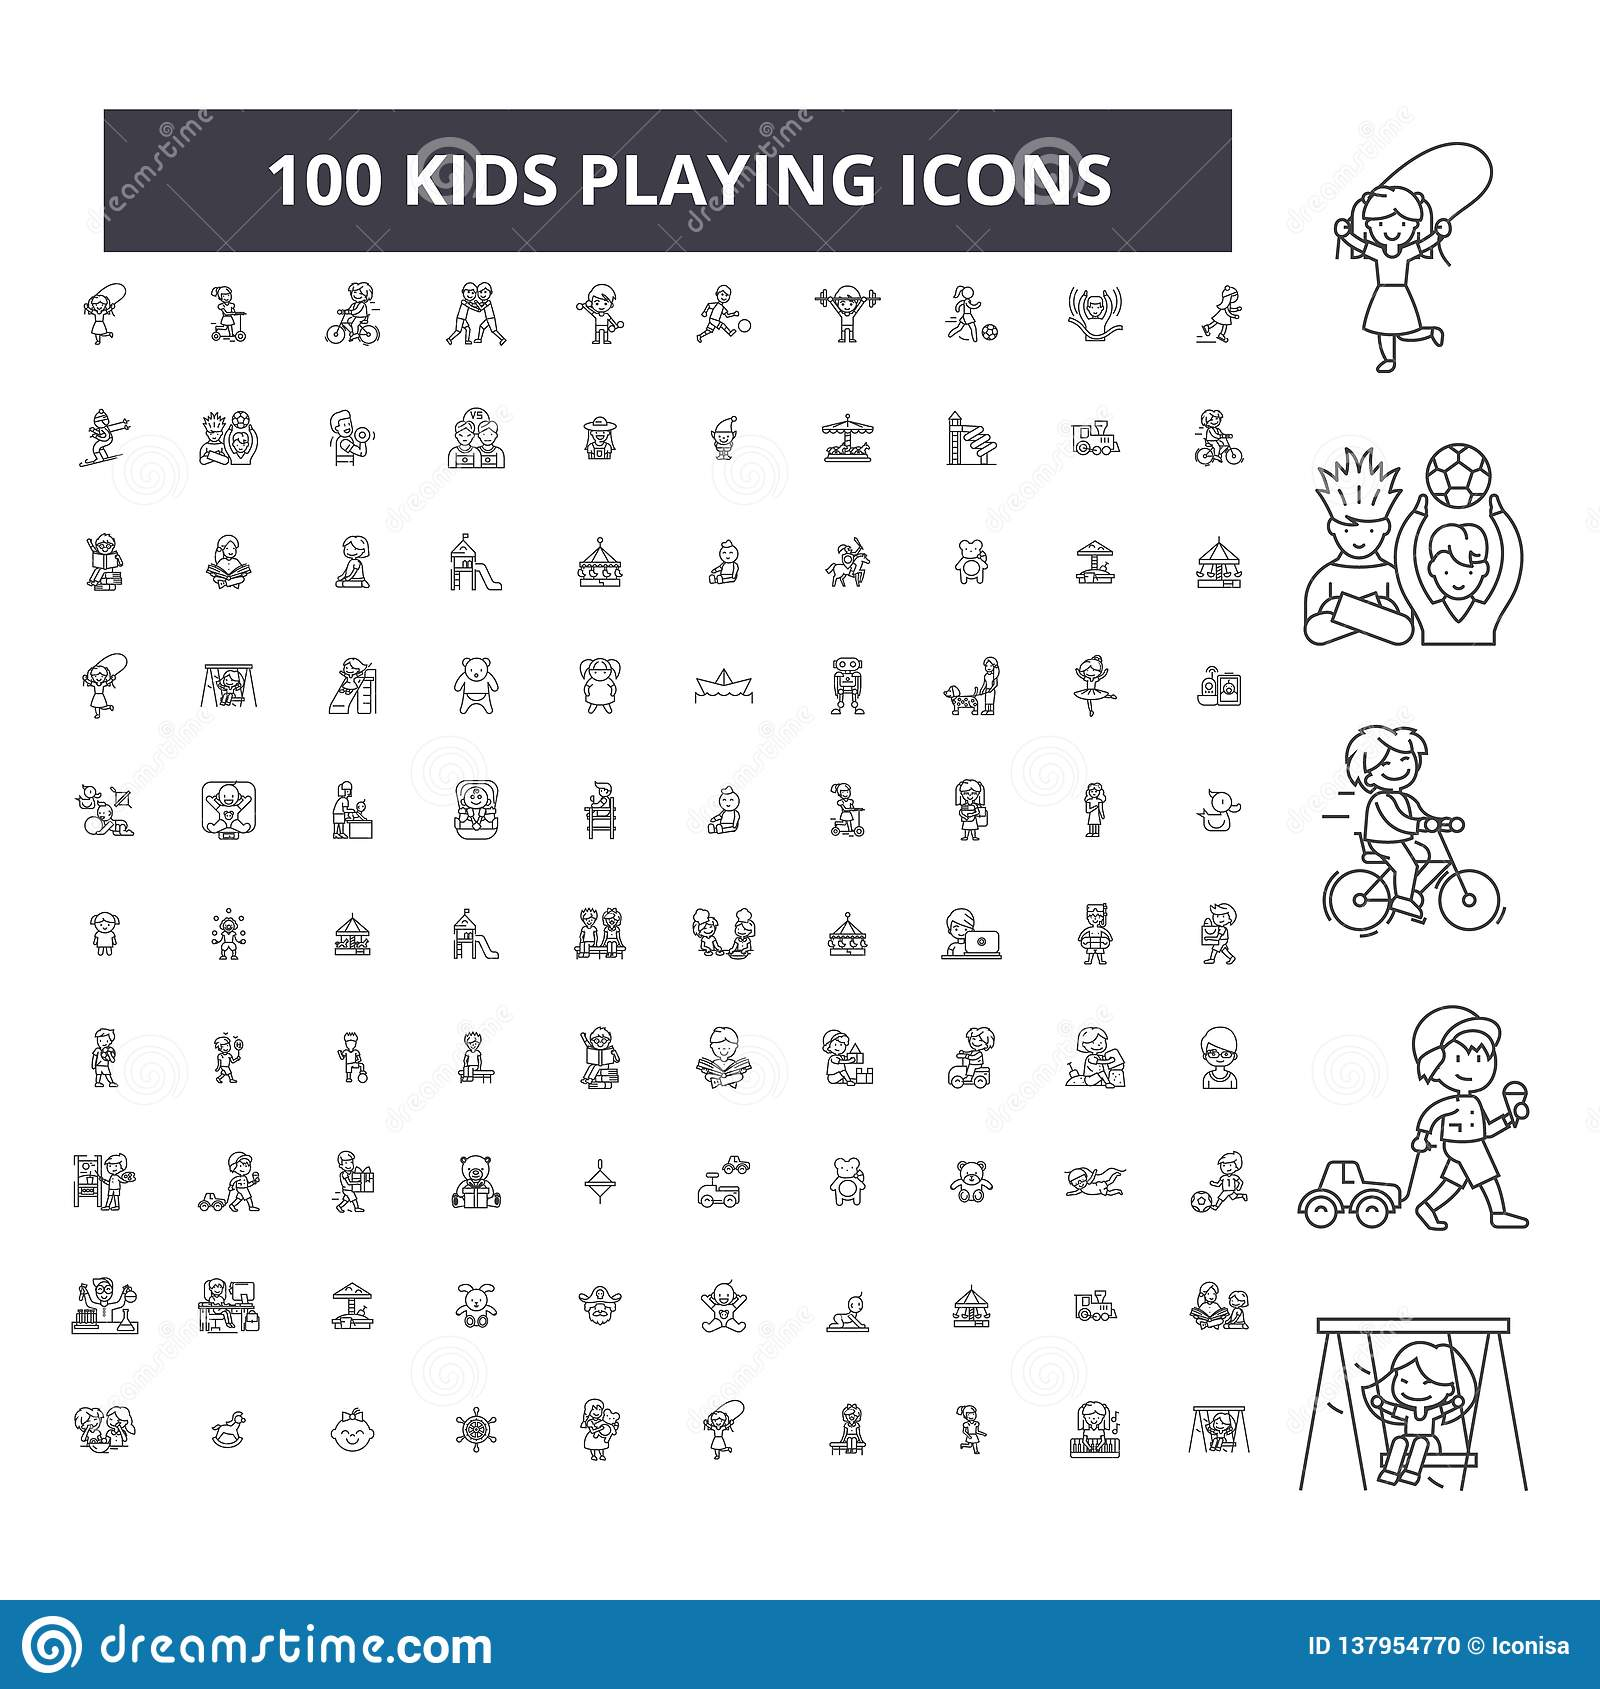 Kids playing editable line icons, 100 vector set, collection. Kids playing black outline illustrations, signs, symbols